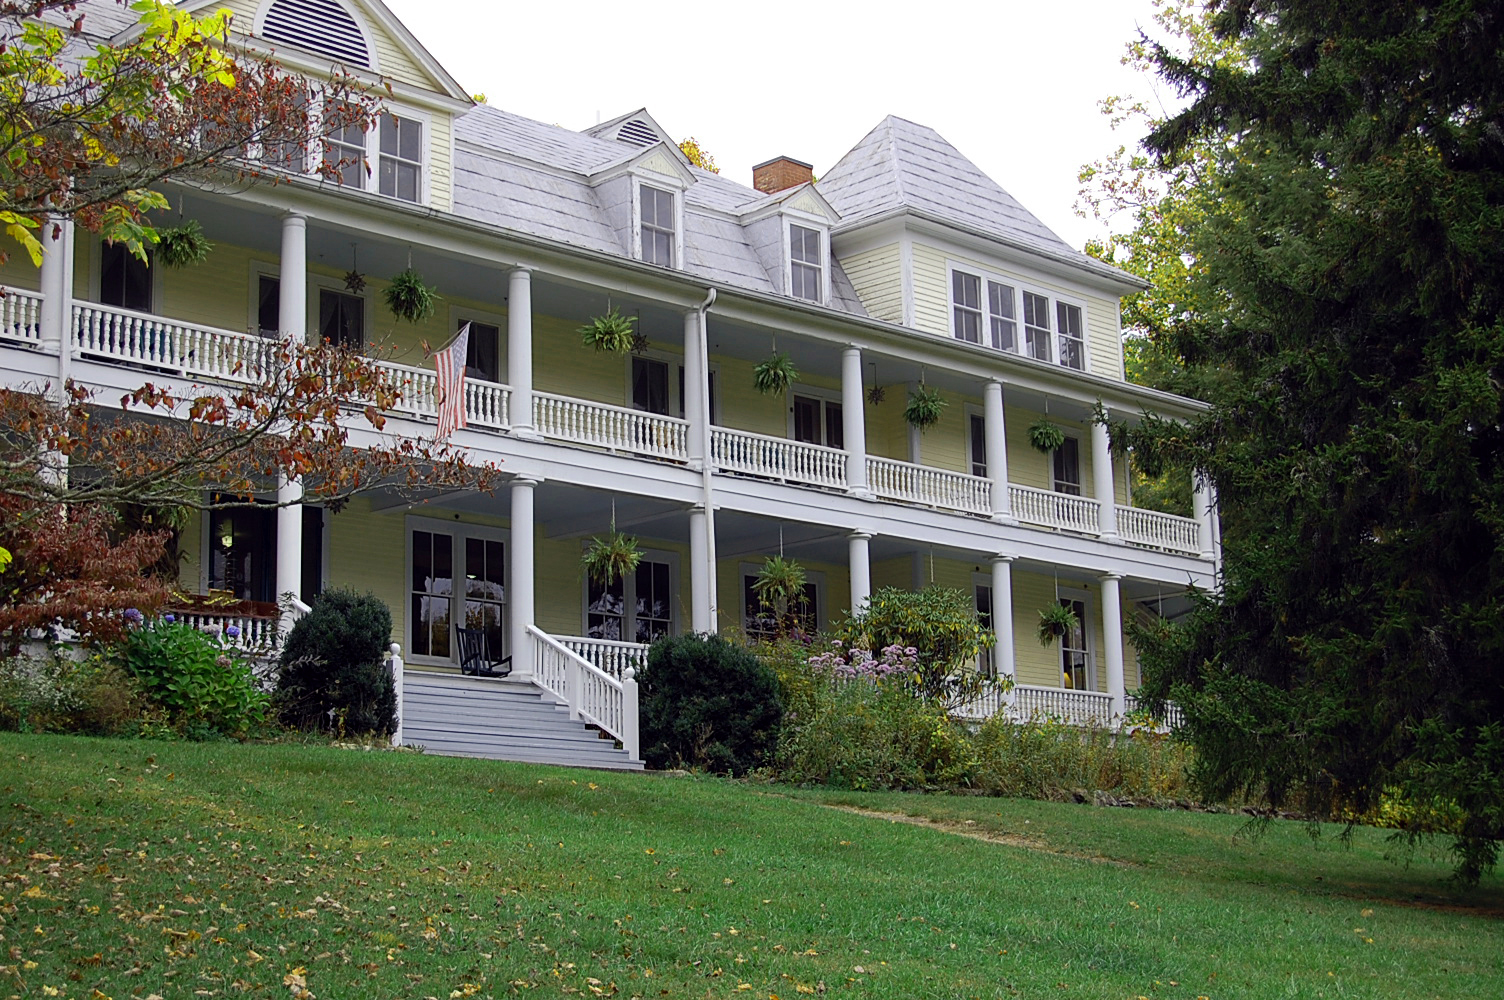 Balsam Mountain Inn Haunted Balsam Mountain Inn